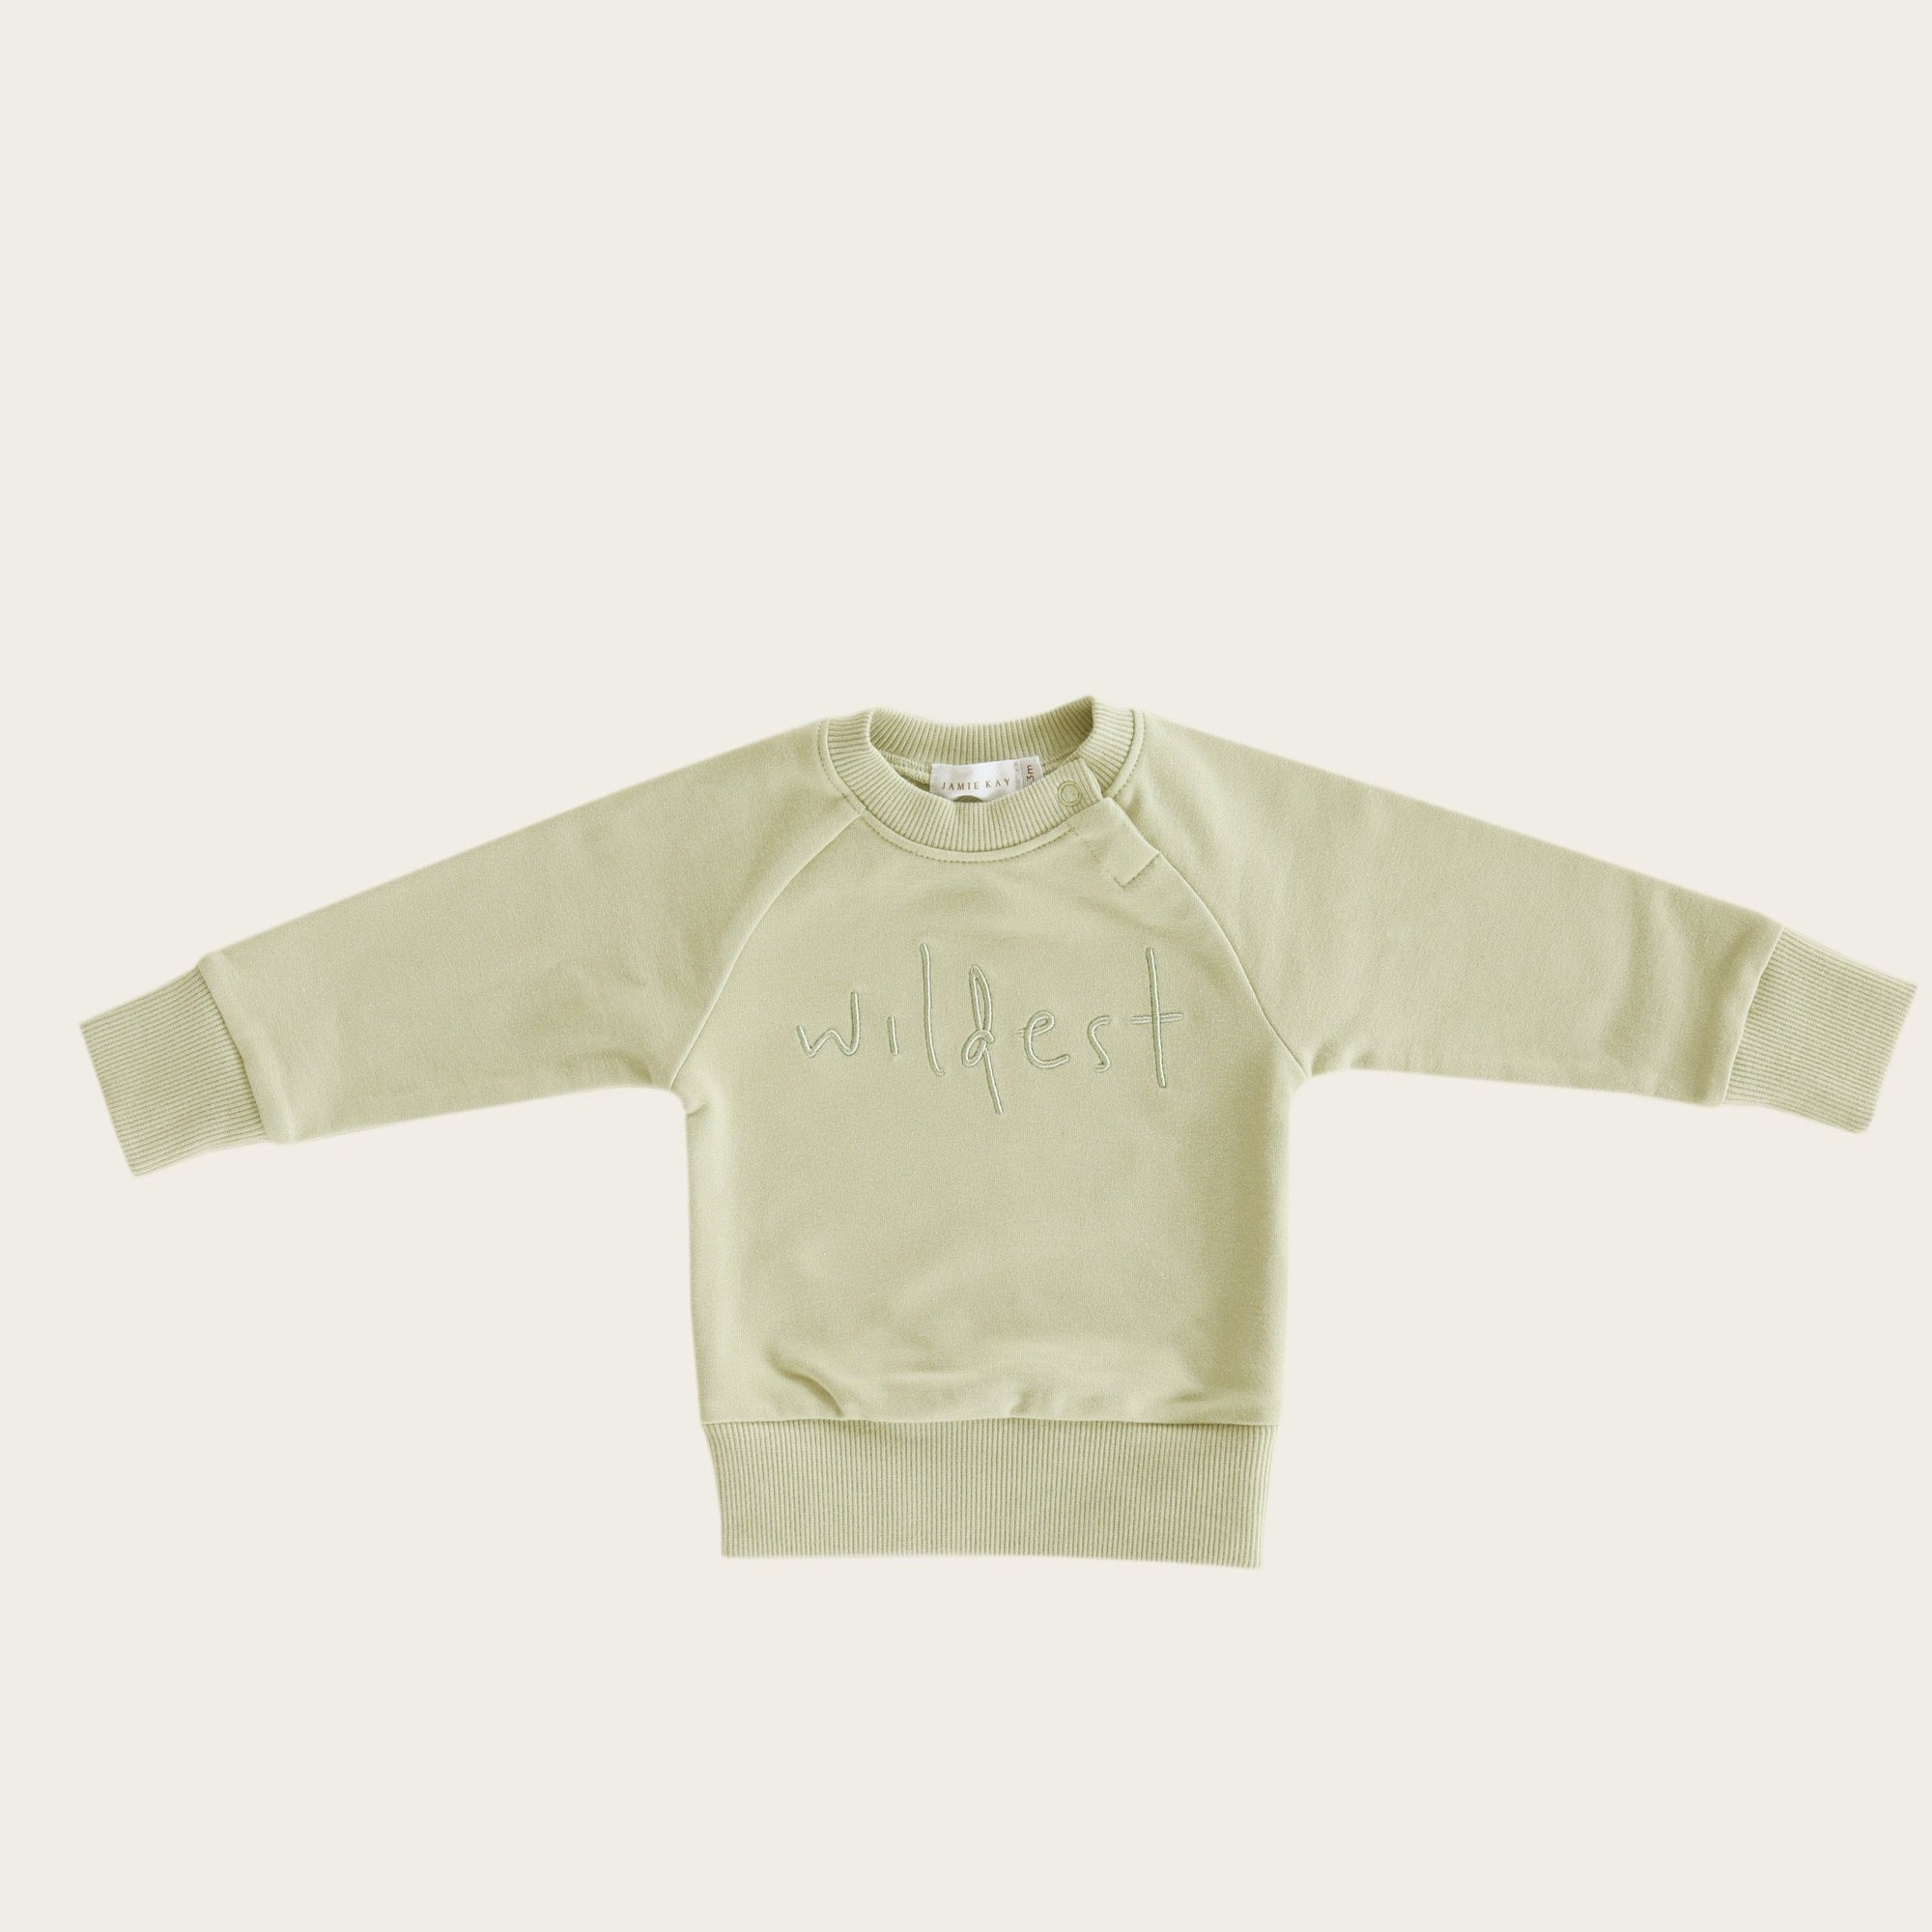 Wildest Sweatshirt (Alfalfa)